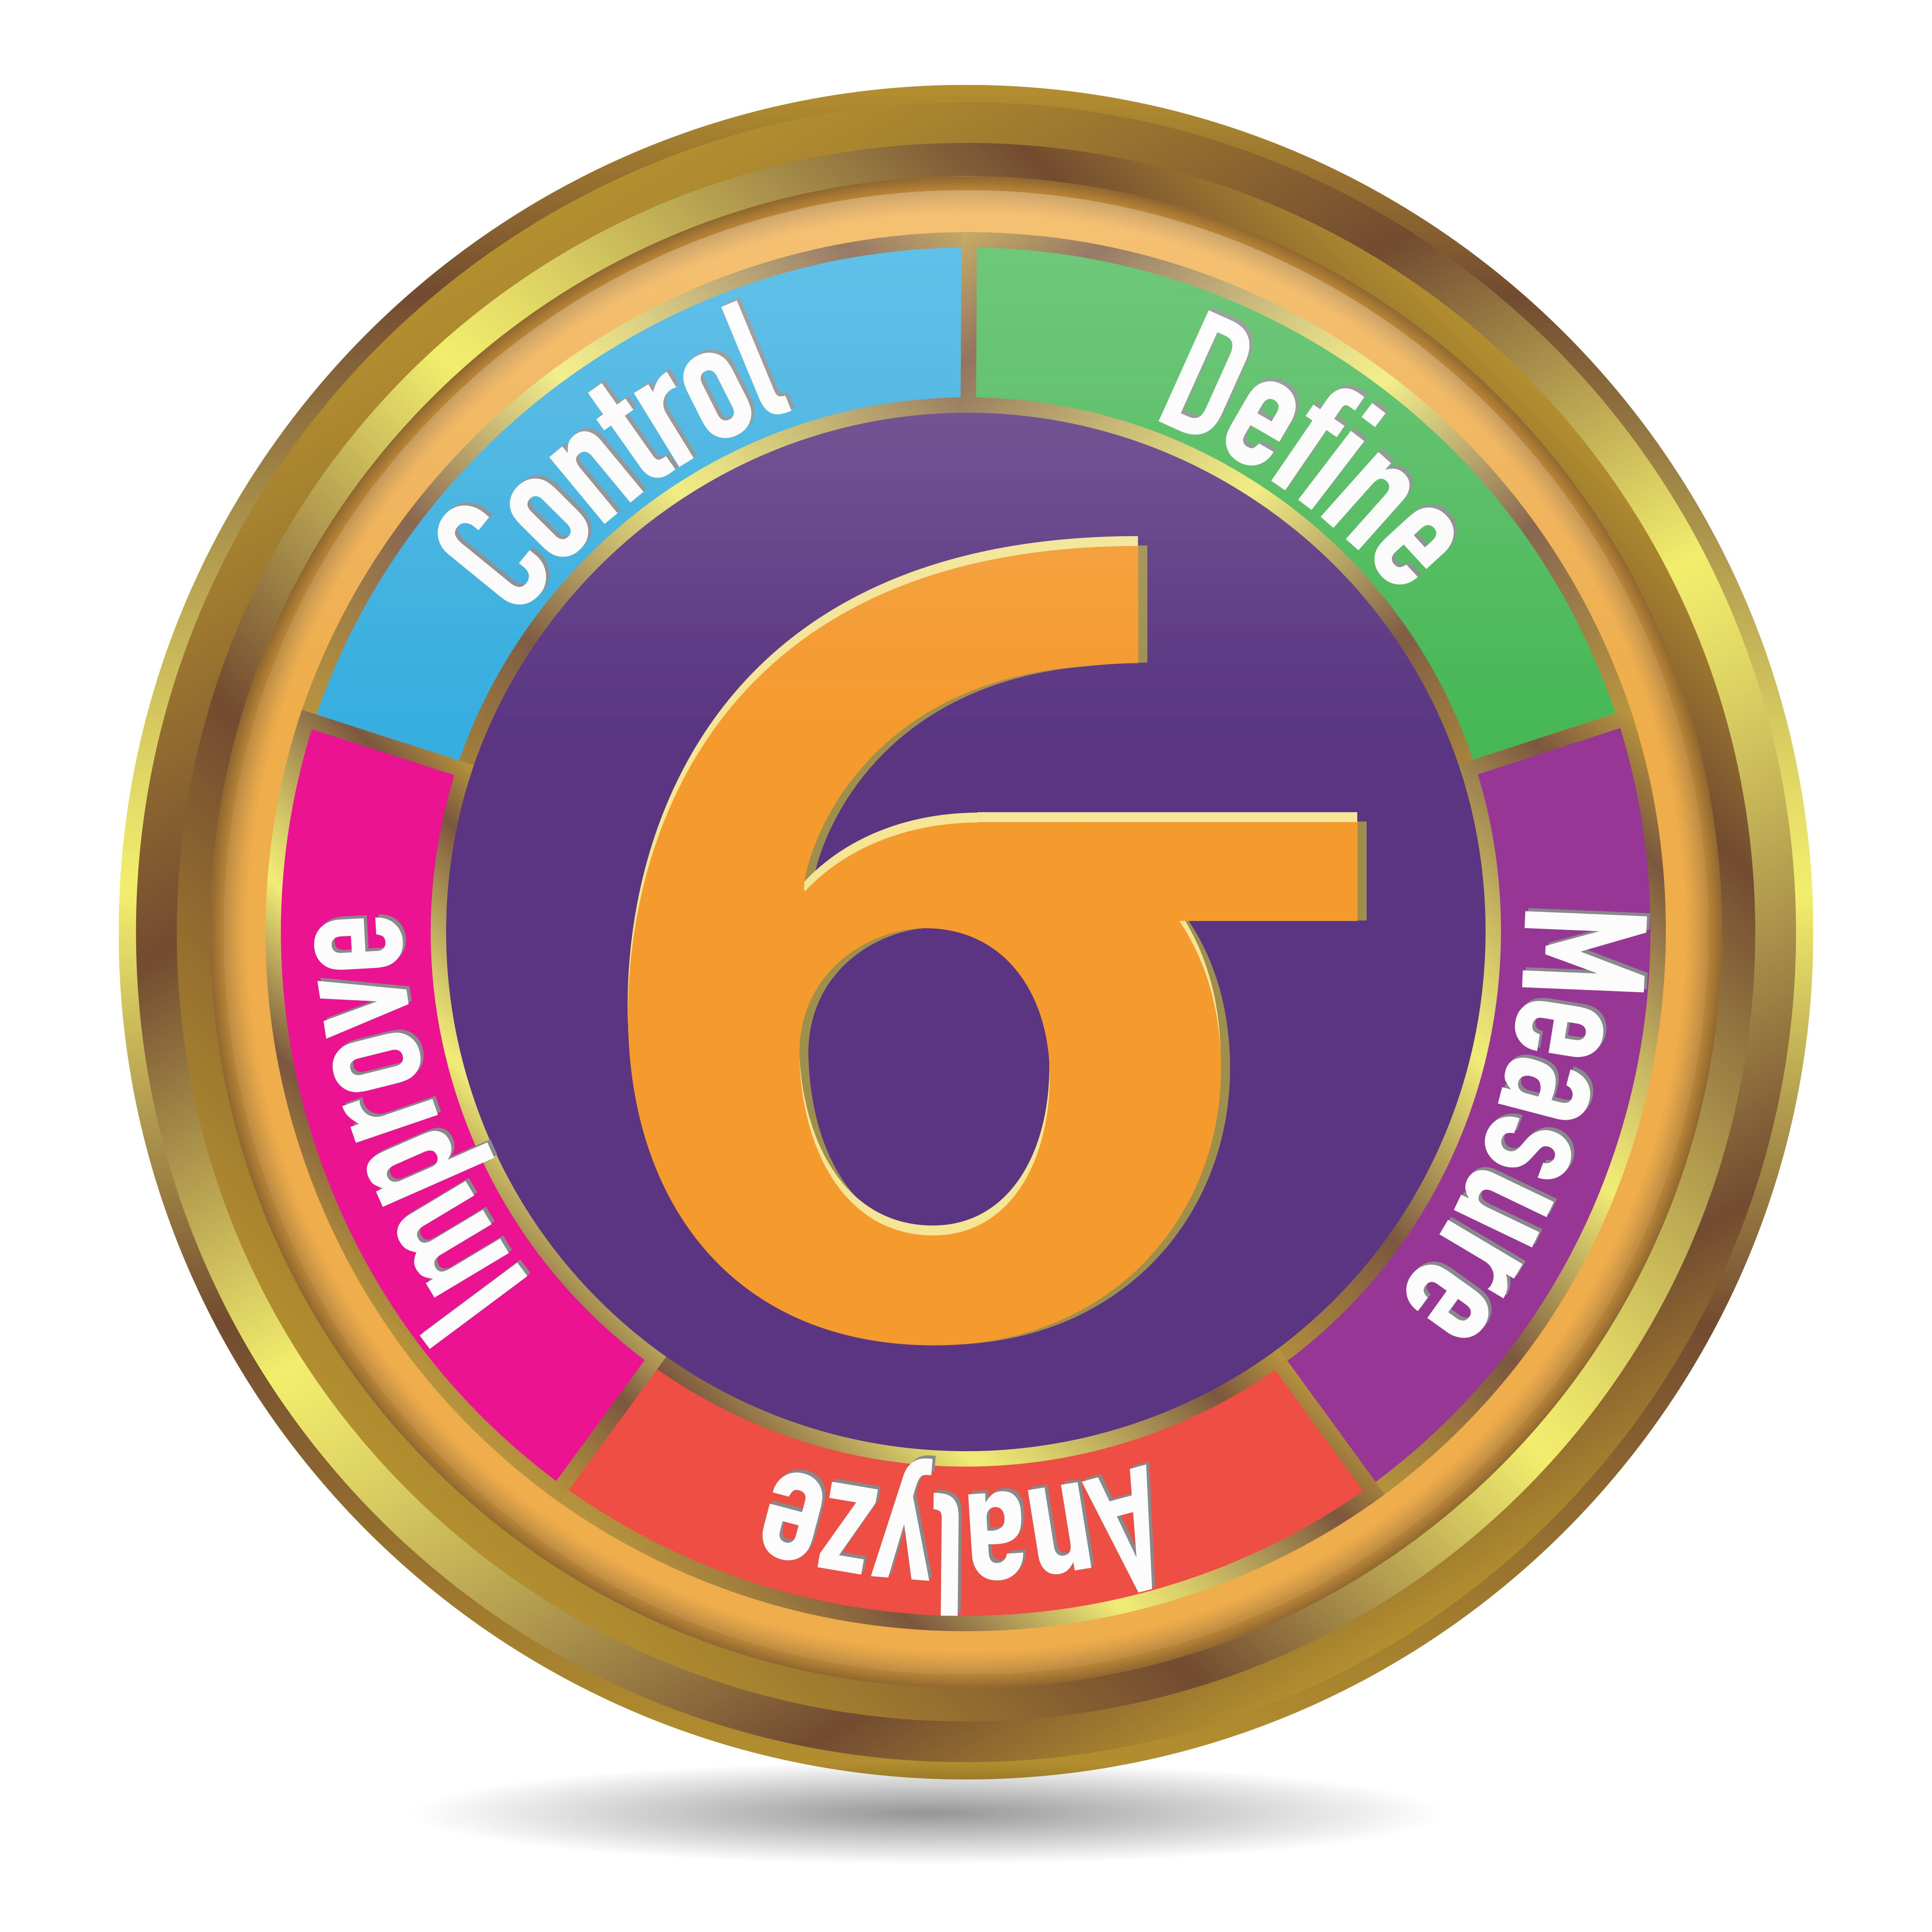 The Six Sigma Strategy S Dmaic Problem Solving Method